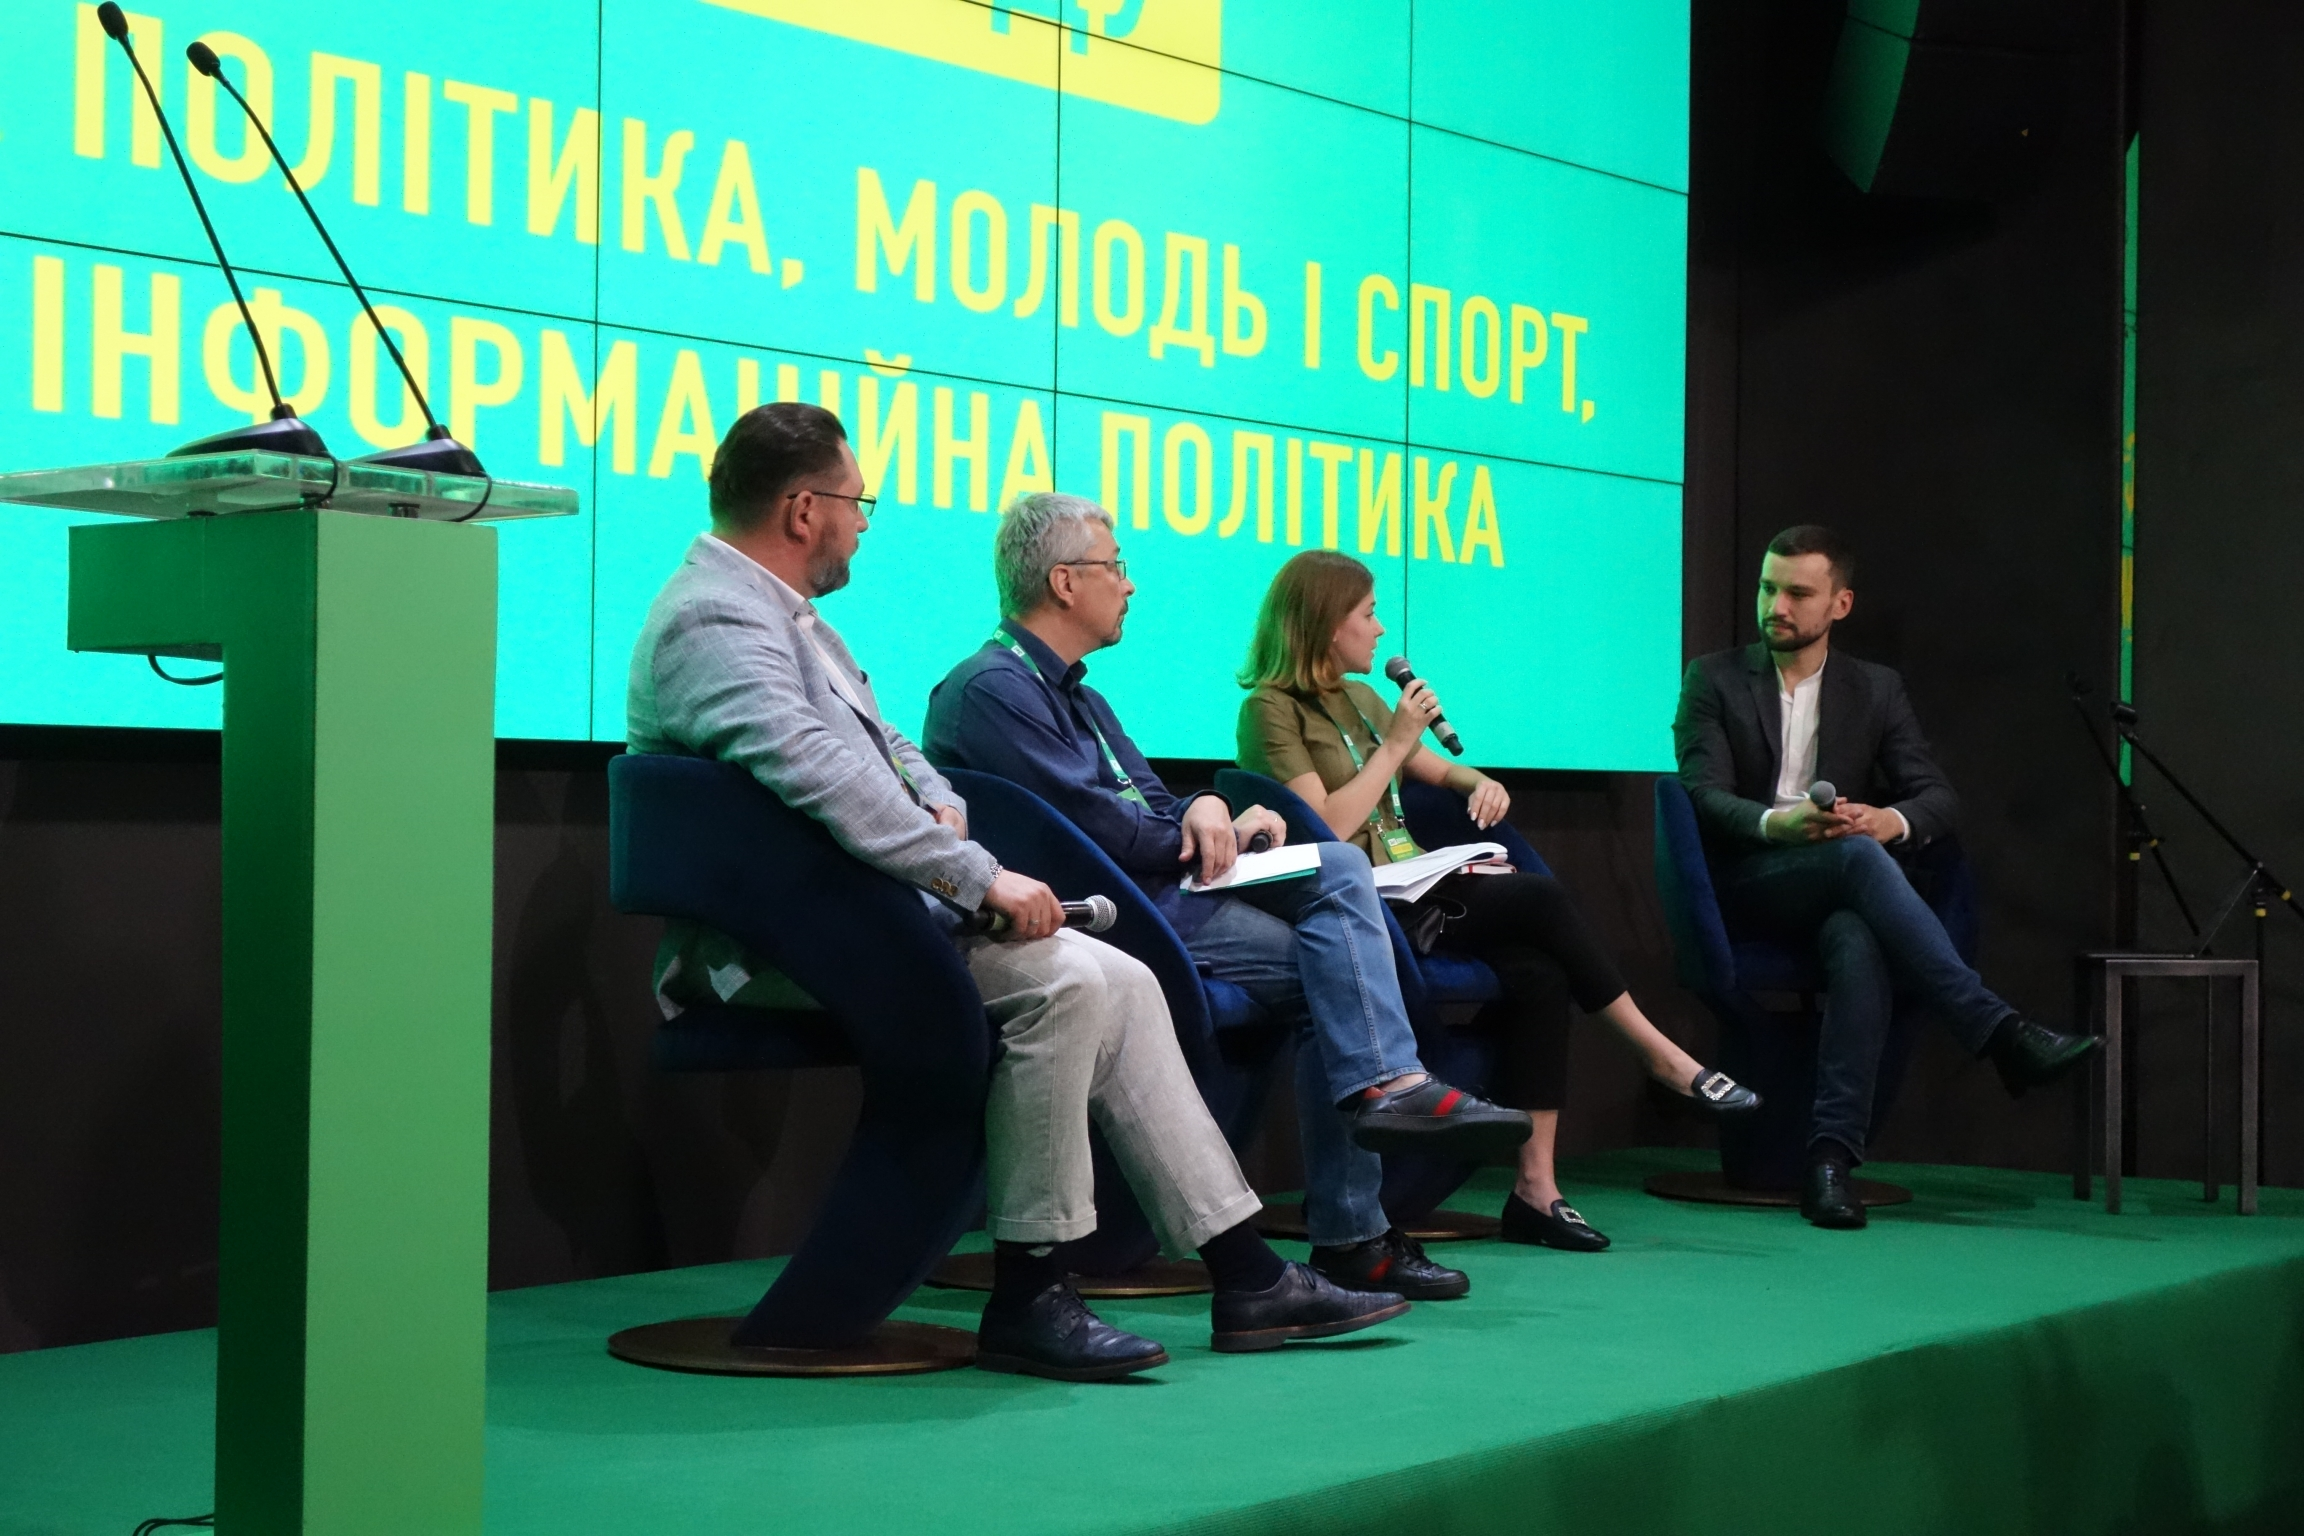 Marina Bardina speaks on a panel with Ukrainian politicians